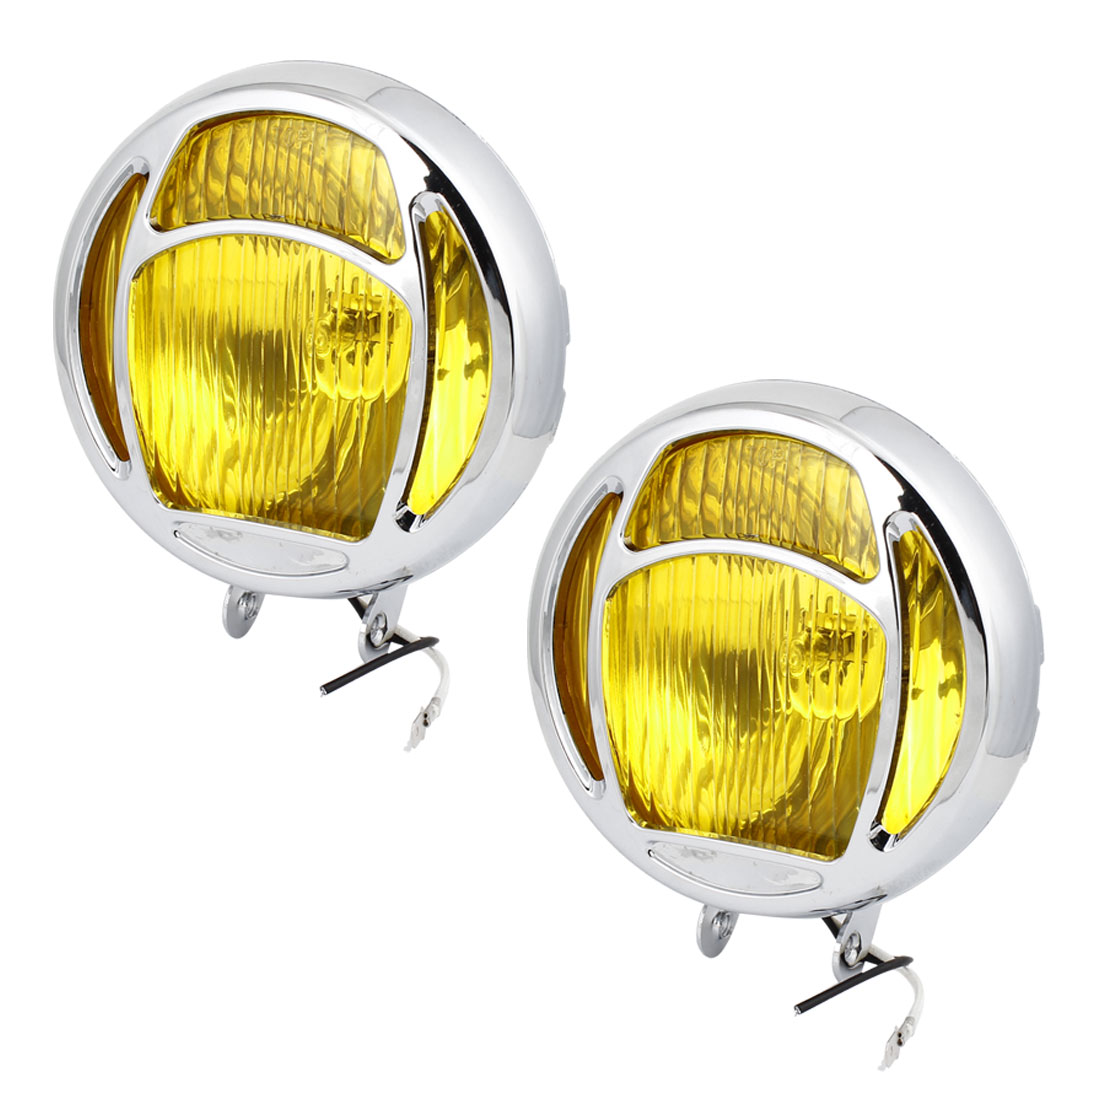 2 Pcs DC12V H3 55W Round Fog Lights Driving Lamps Bulb Amber for Truck Car